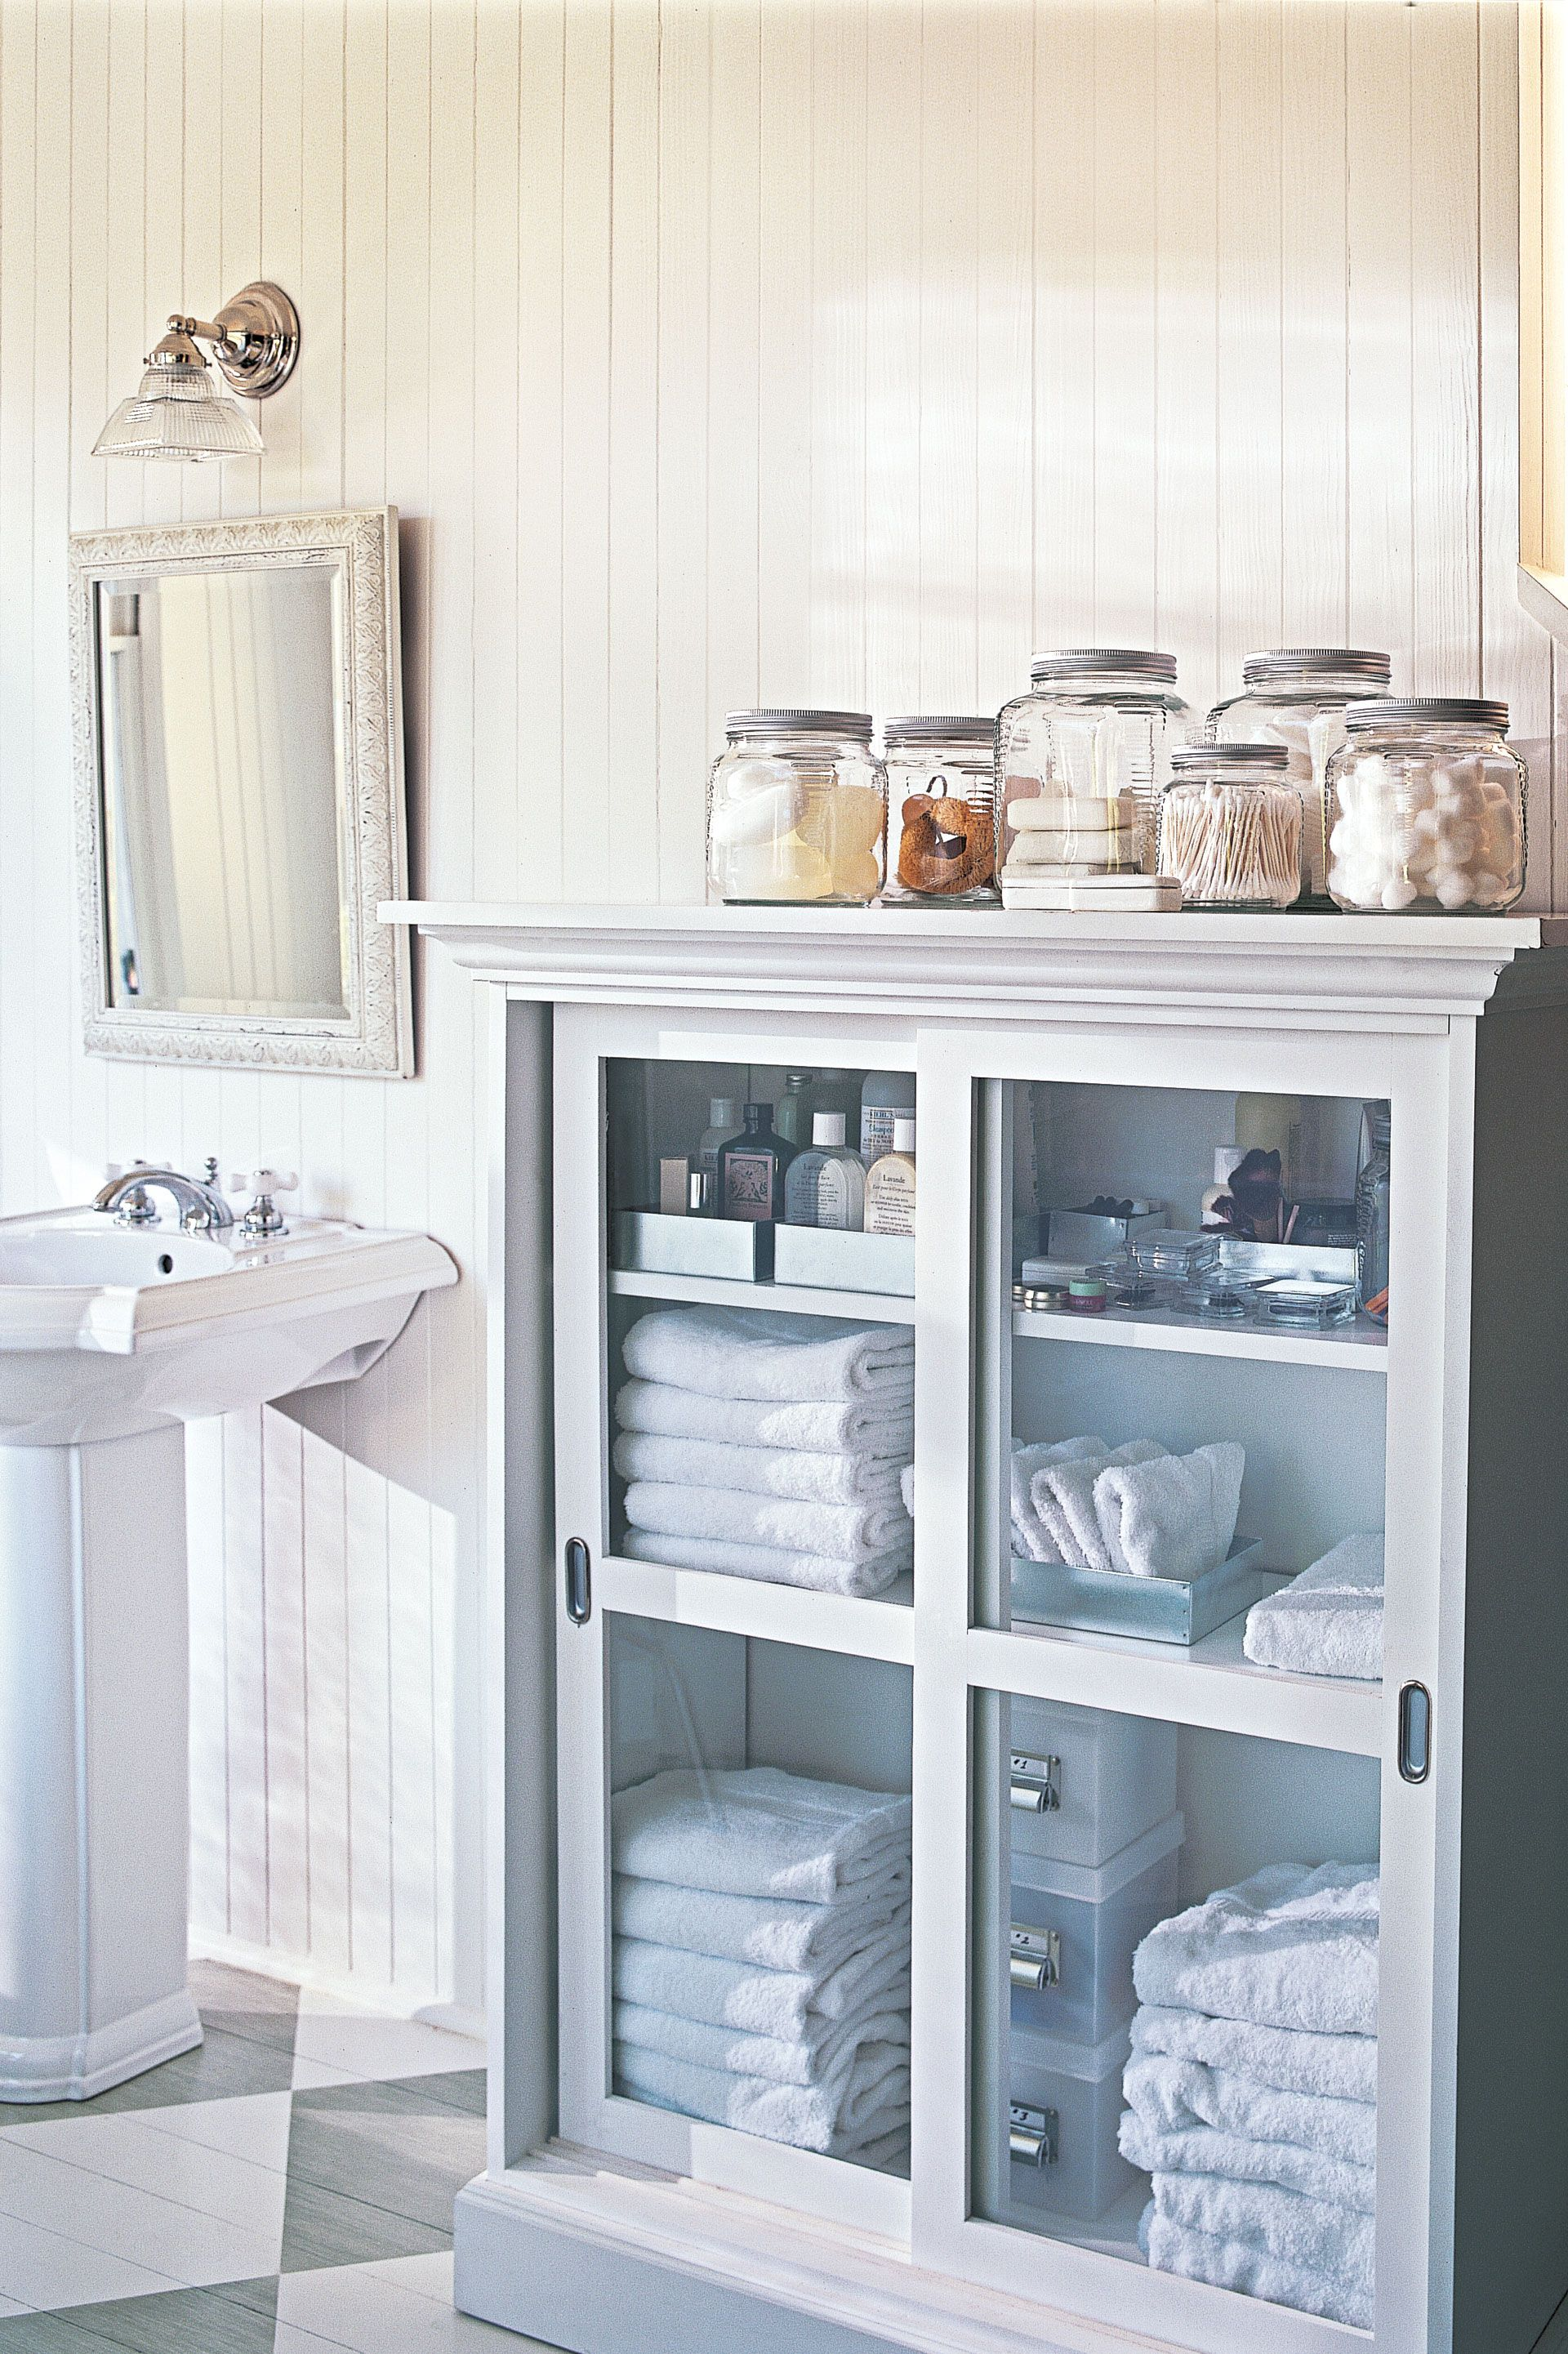 Bathroom Canisters 20 Bathroom Organization Ideas Best Bathroom Organizers To Try